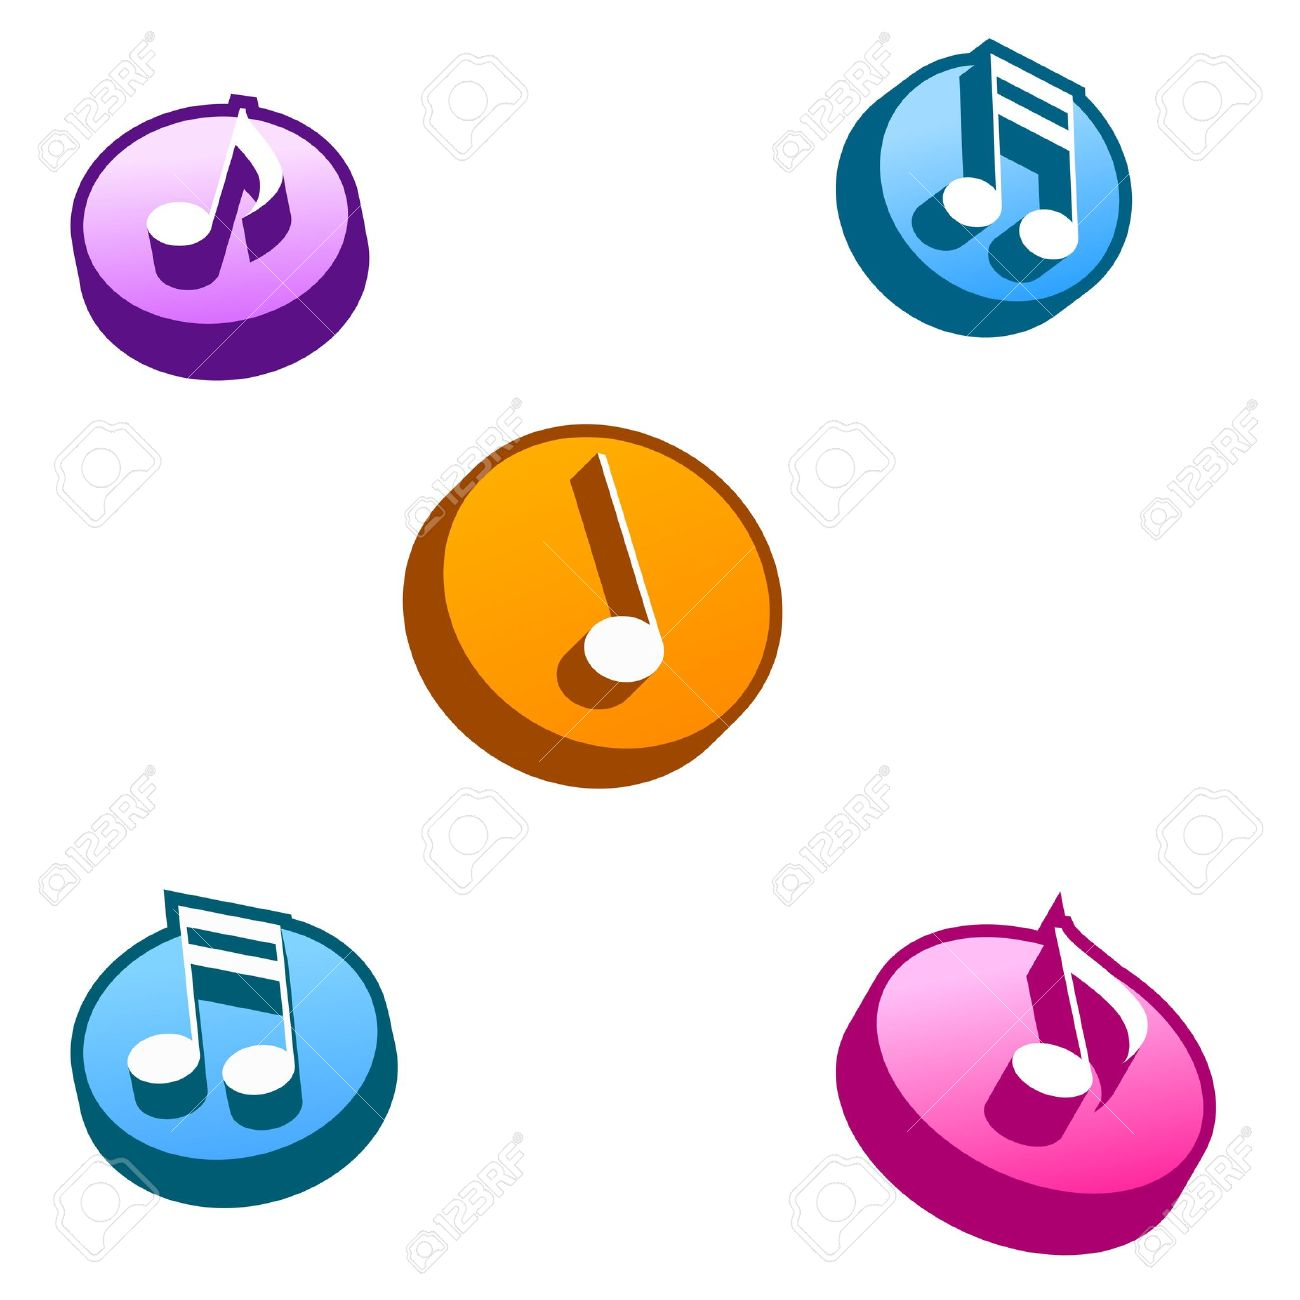 3D Music Selection Button Stock Photo, Picture And Royalty Free.